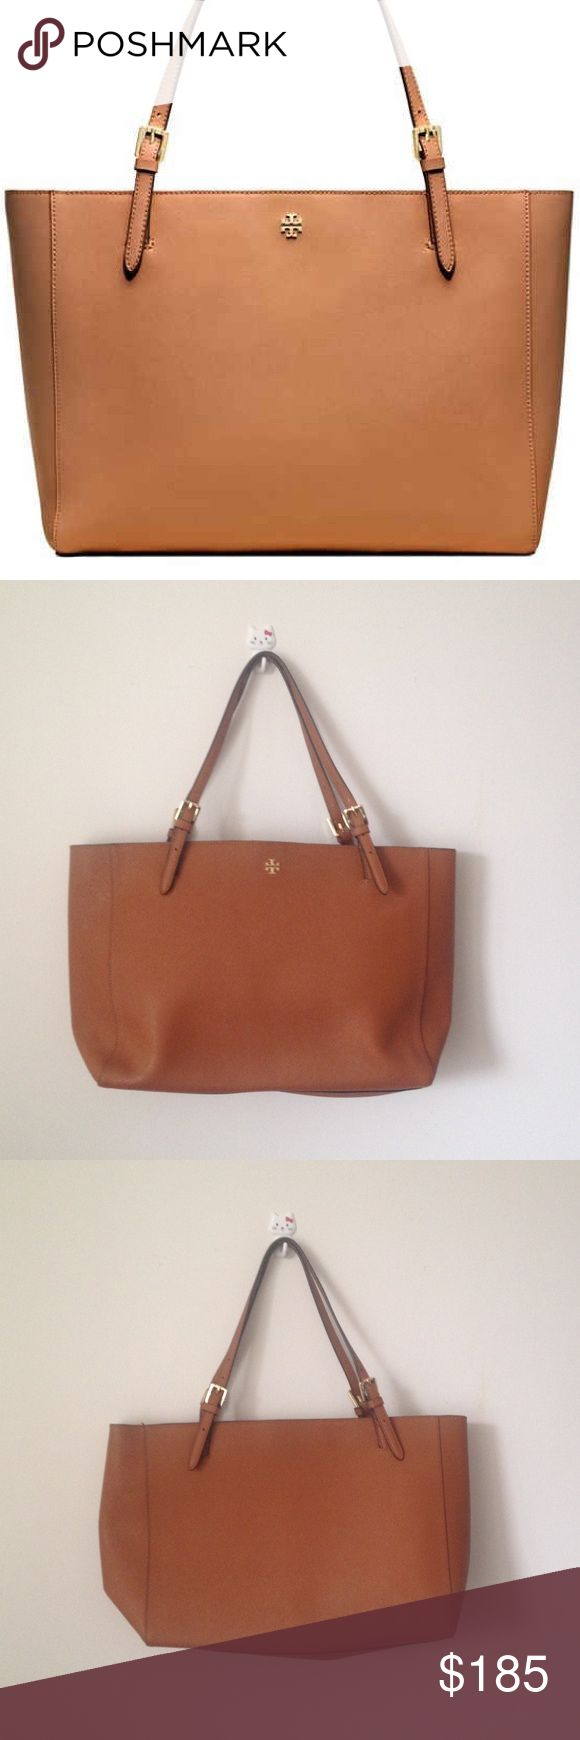 Tory Burch Large York Tote Bag Tan Quintessential York Tote from Tory Burch in great shape with light flaw to one handle end and some glitter particles in interior bottom - see pics. This is the large size with padded mid section for laptop. Offers welcomed, no trades! Tory Burch Bags Totes